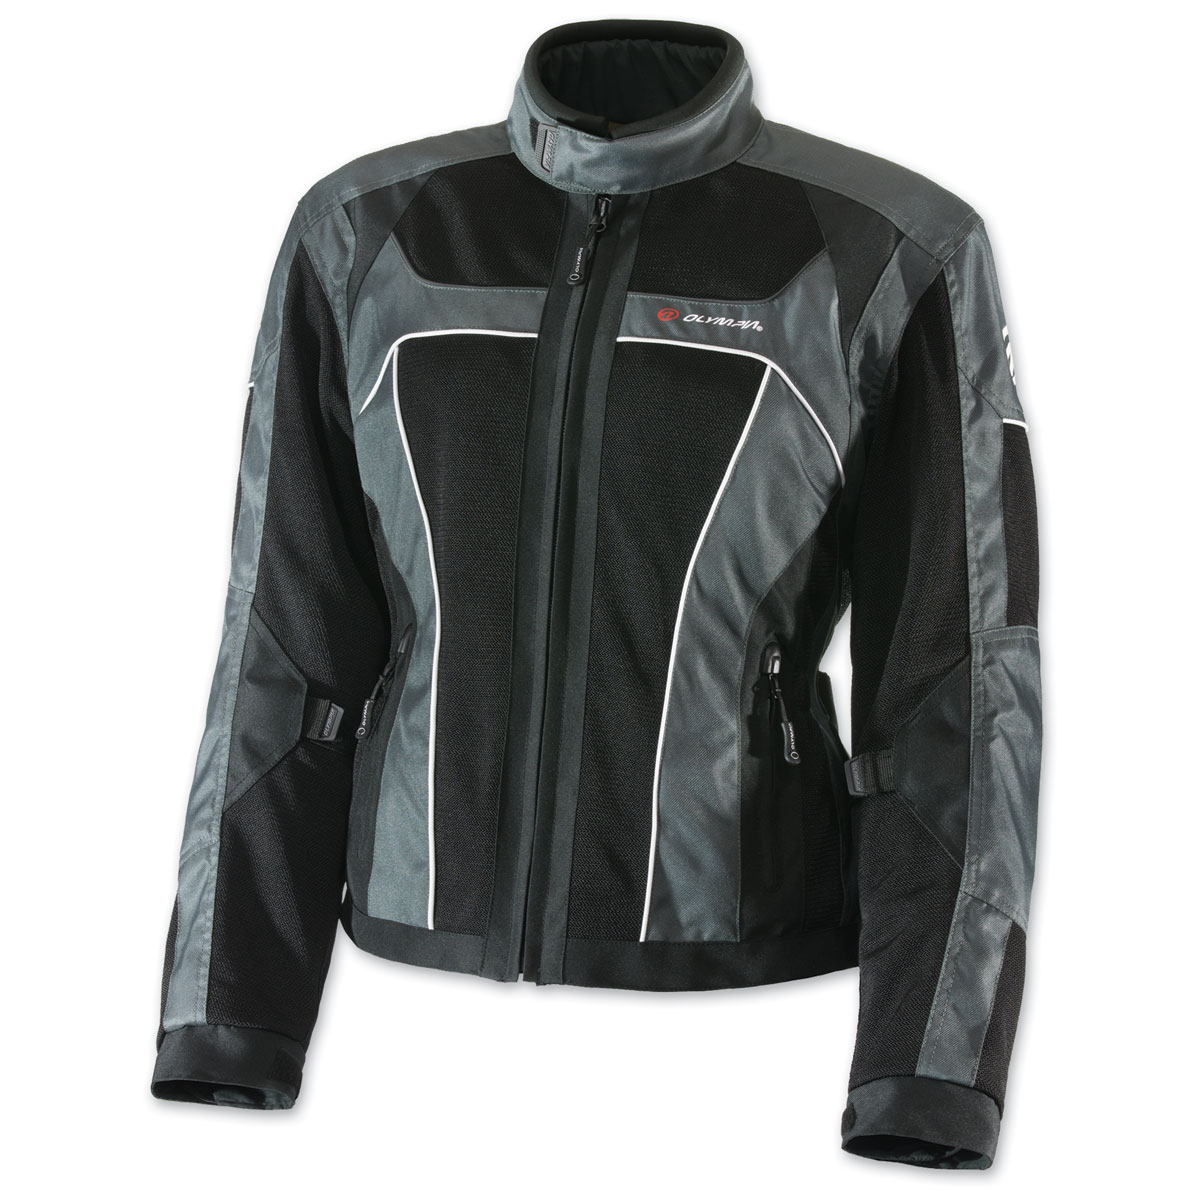 Olympia Moto Sports Women's Eve Mesh Tech Gray Jacket